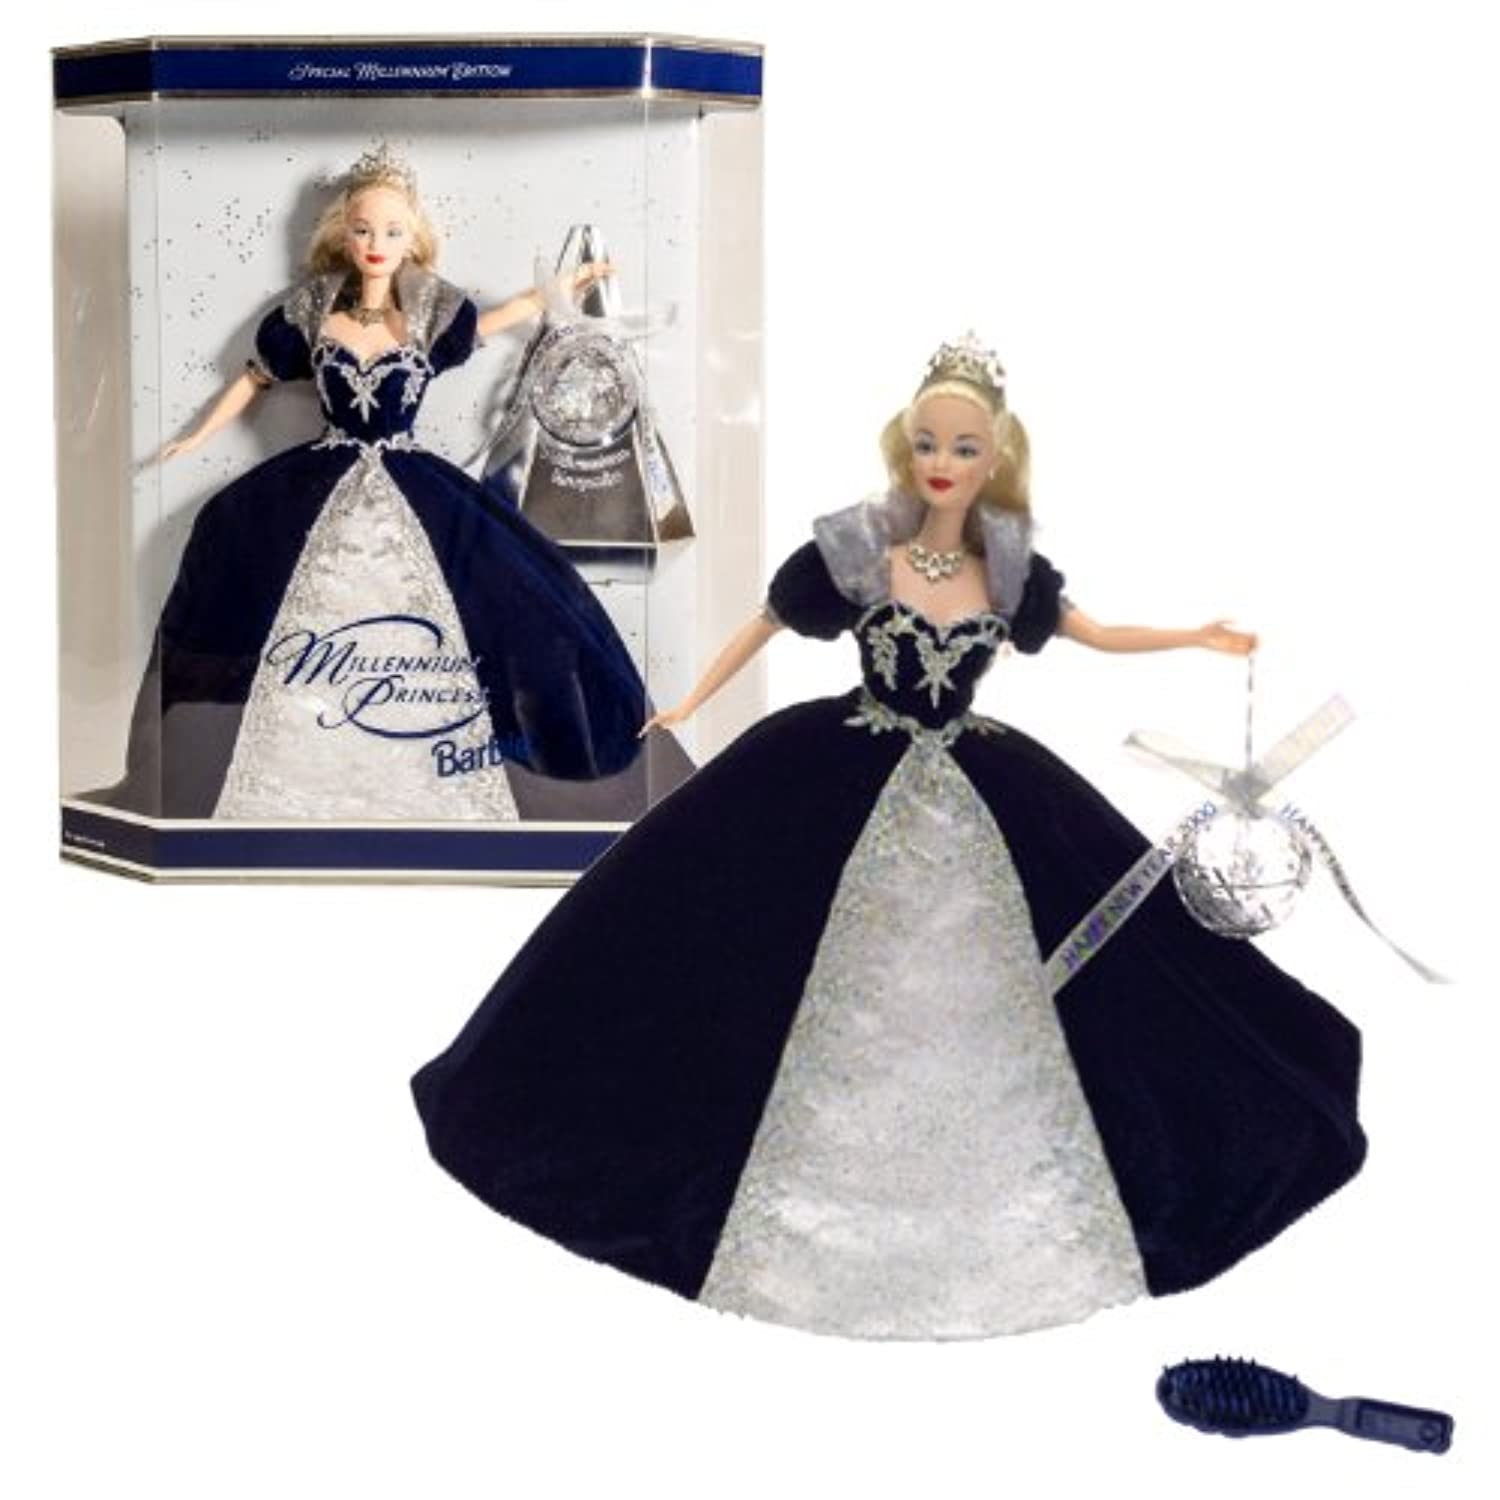 Holiday Barbie Special Millenium Edition Mattel Year 1999 2000 with Glitter Background inside Box by Barbie